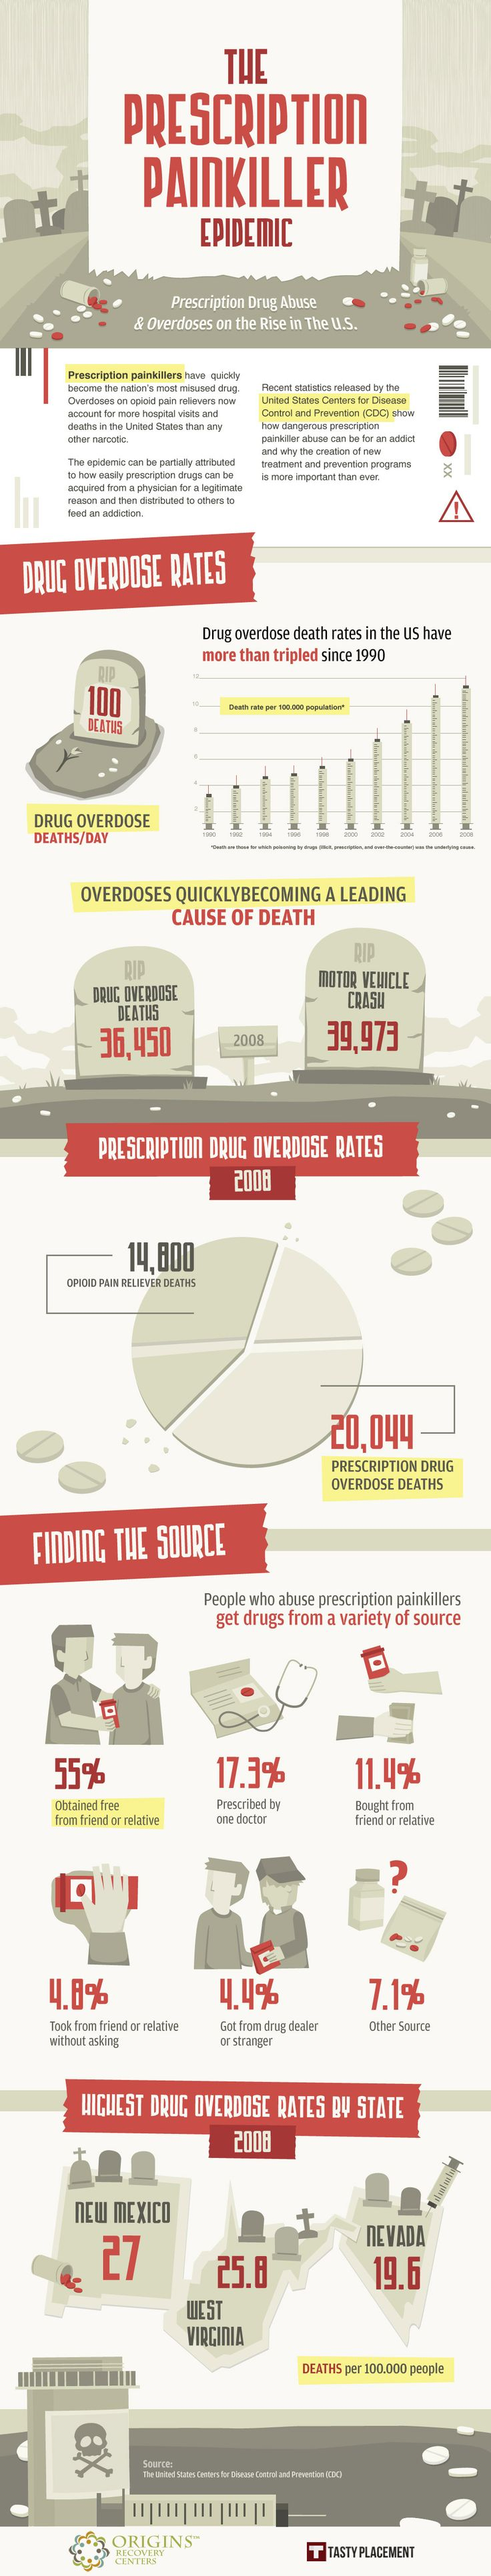 US Prescription Painkiller Epidemic. Moe than 100 drug overdose deaths per day. #infographic